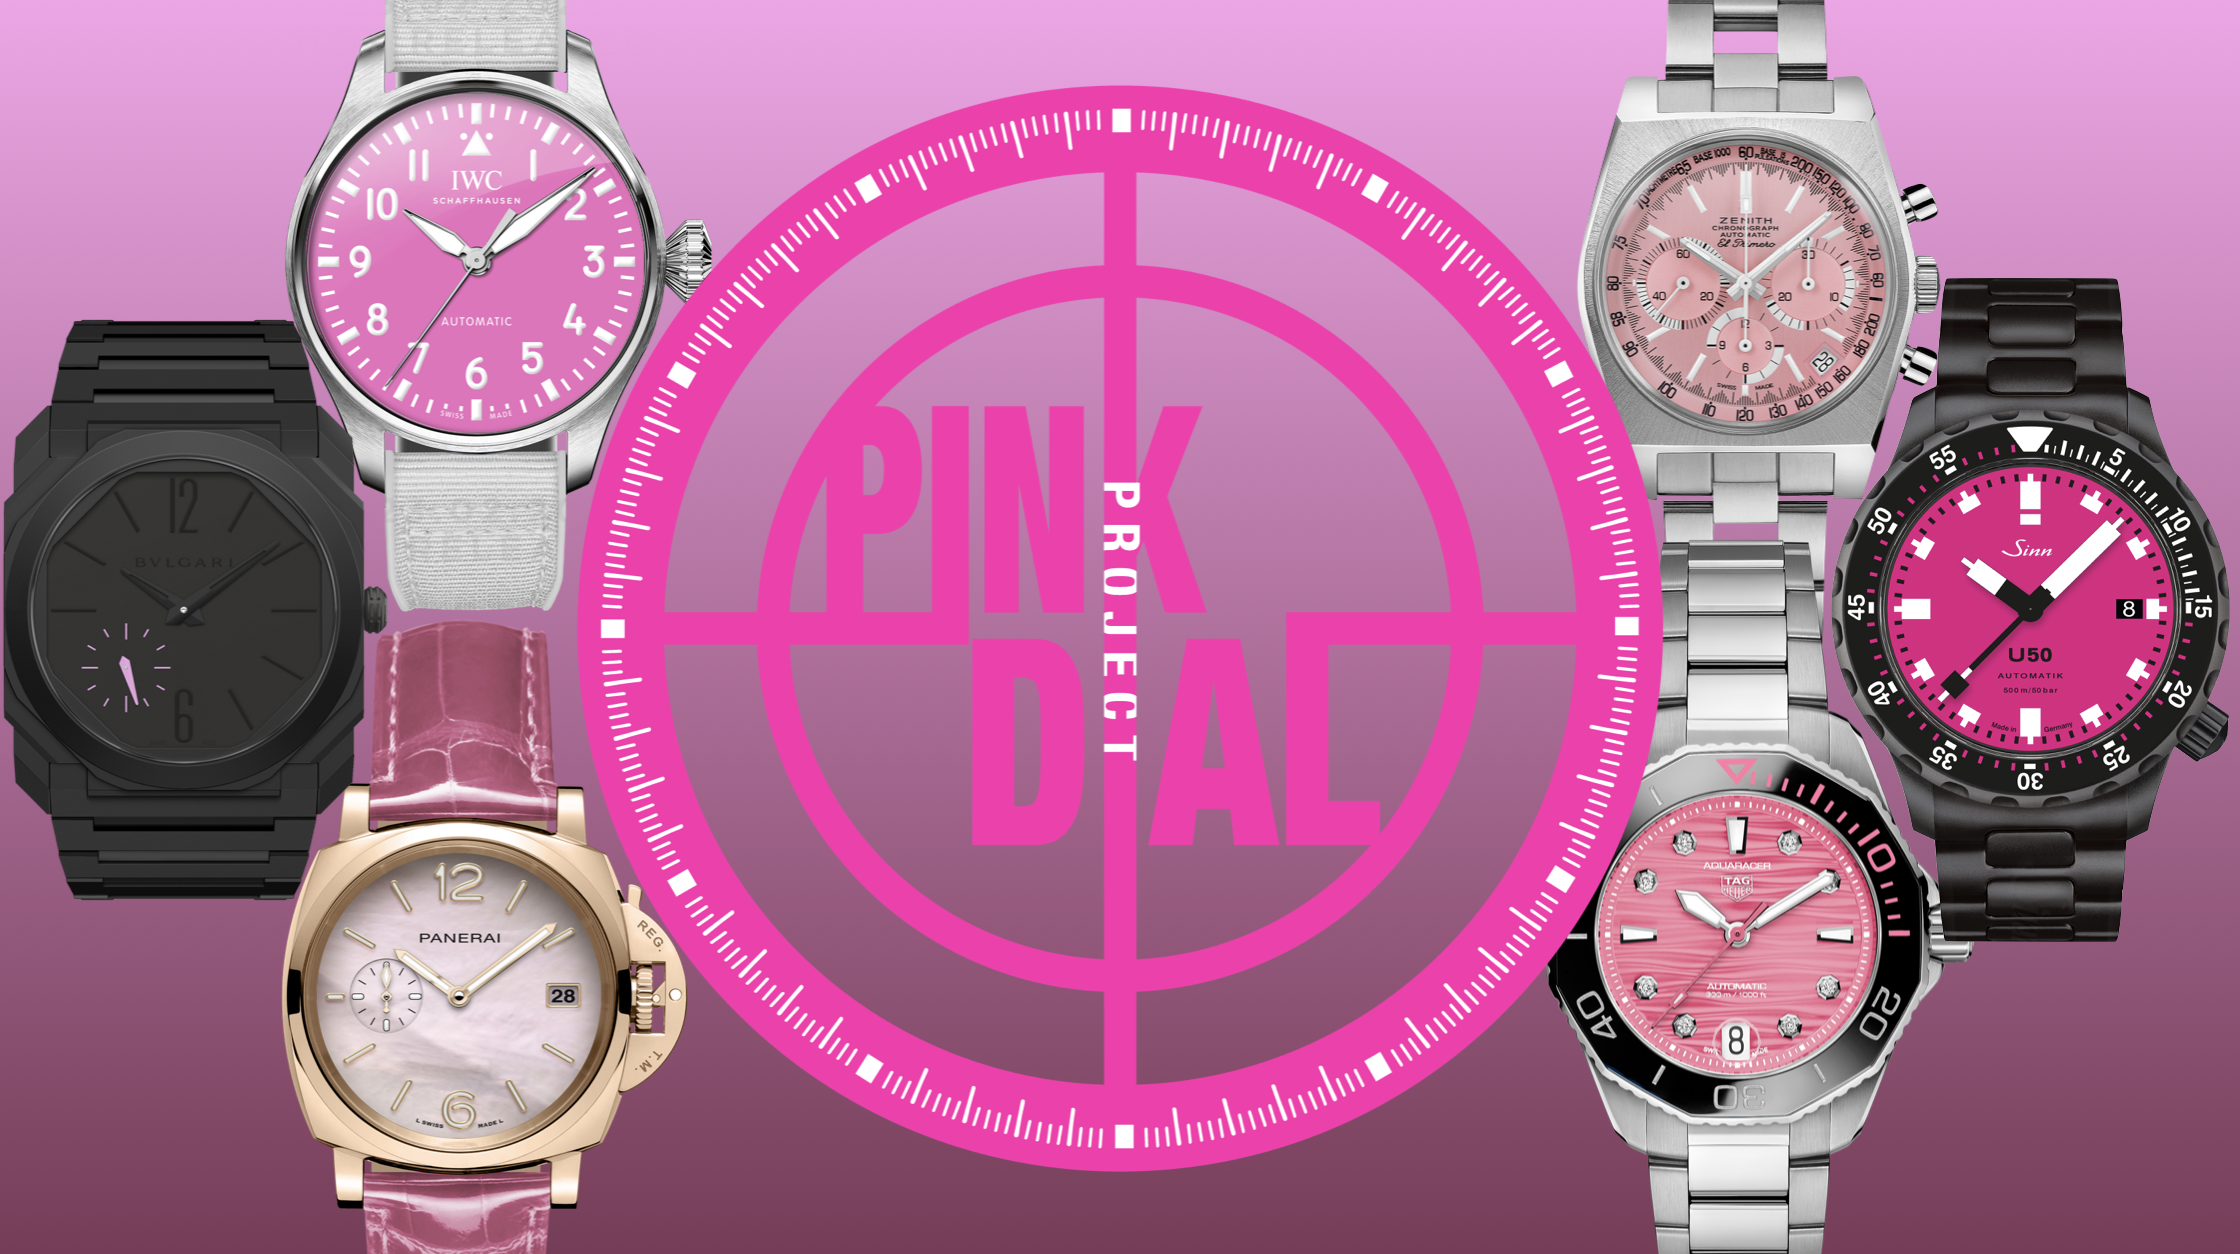 Announcing the 'Pink Dial Project' – an auction of pink prototypes in aid of breast cancer